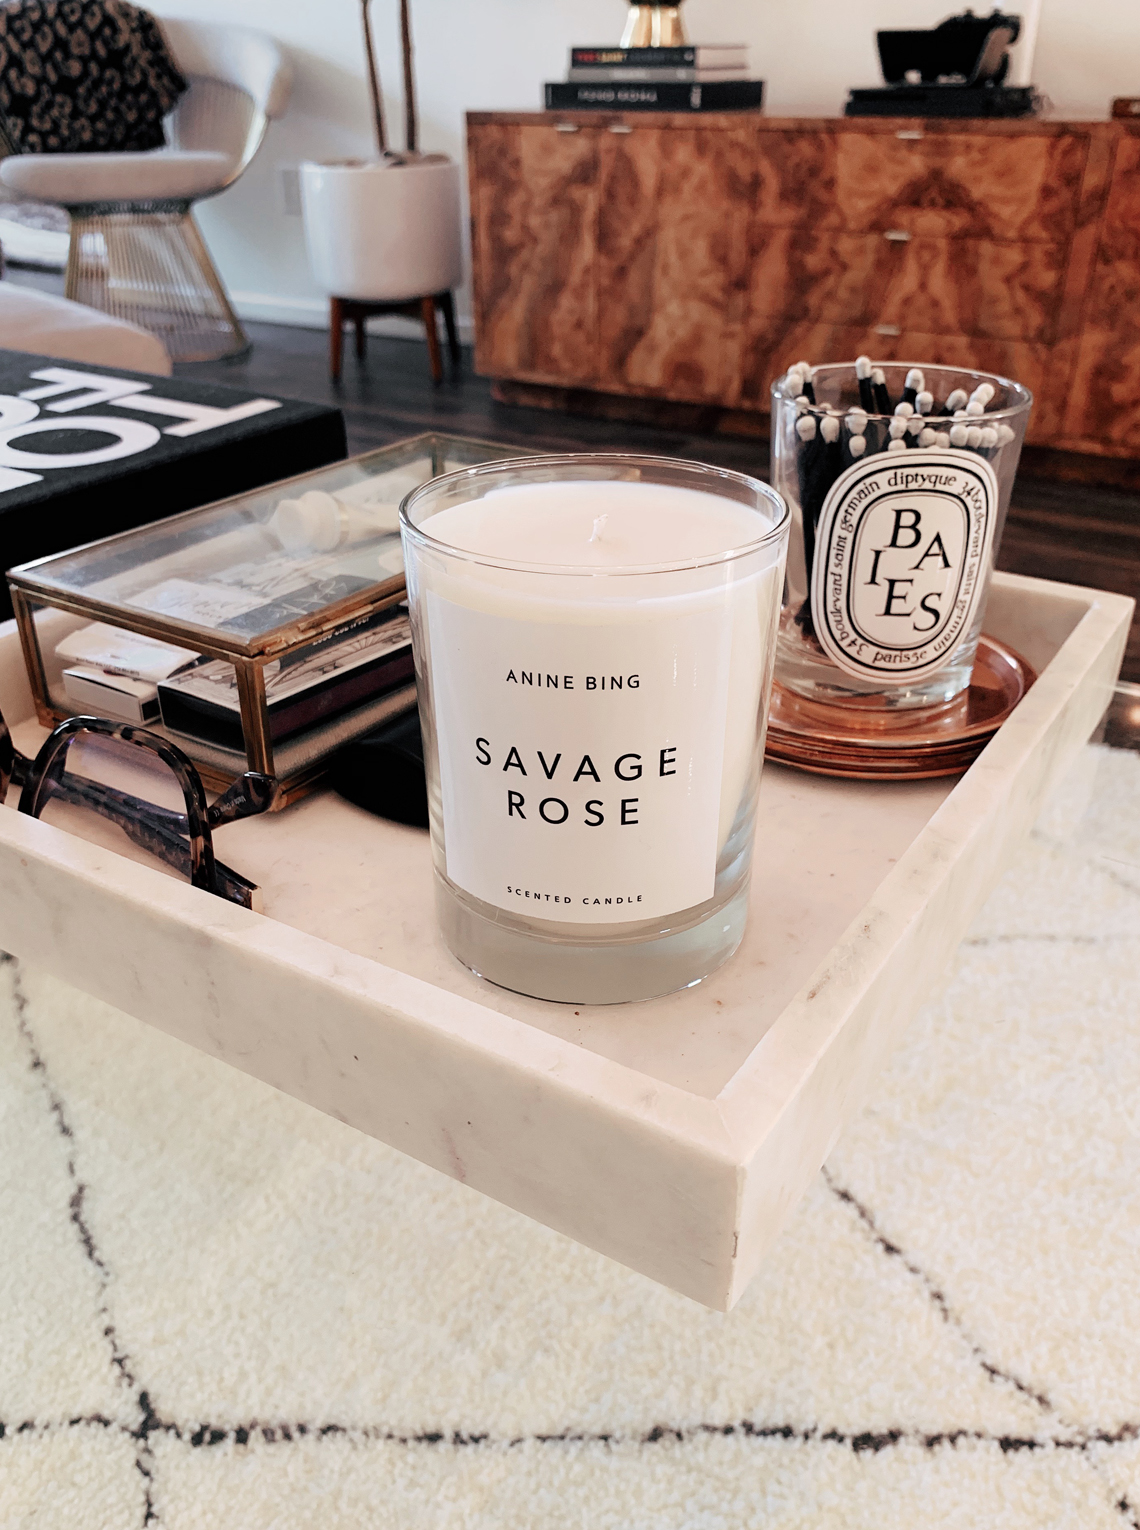 Anine Bing Savage Rose Candle